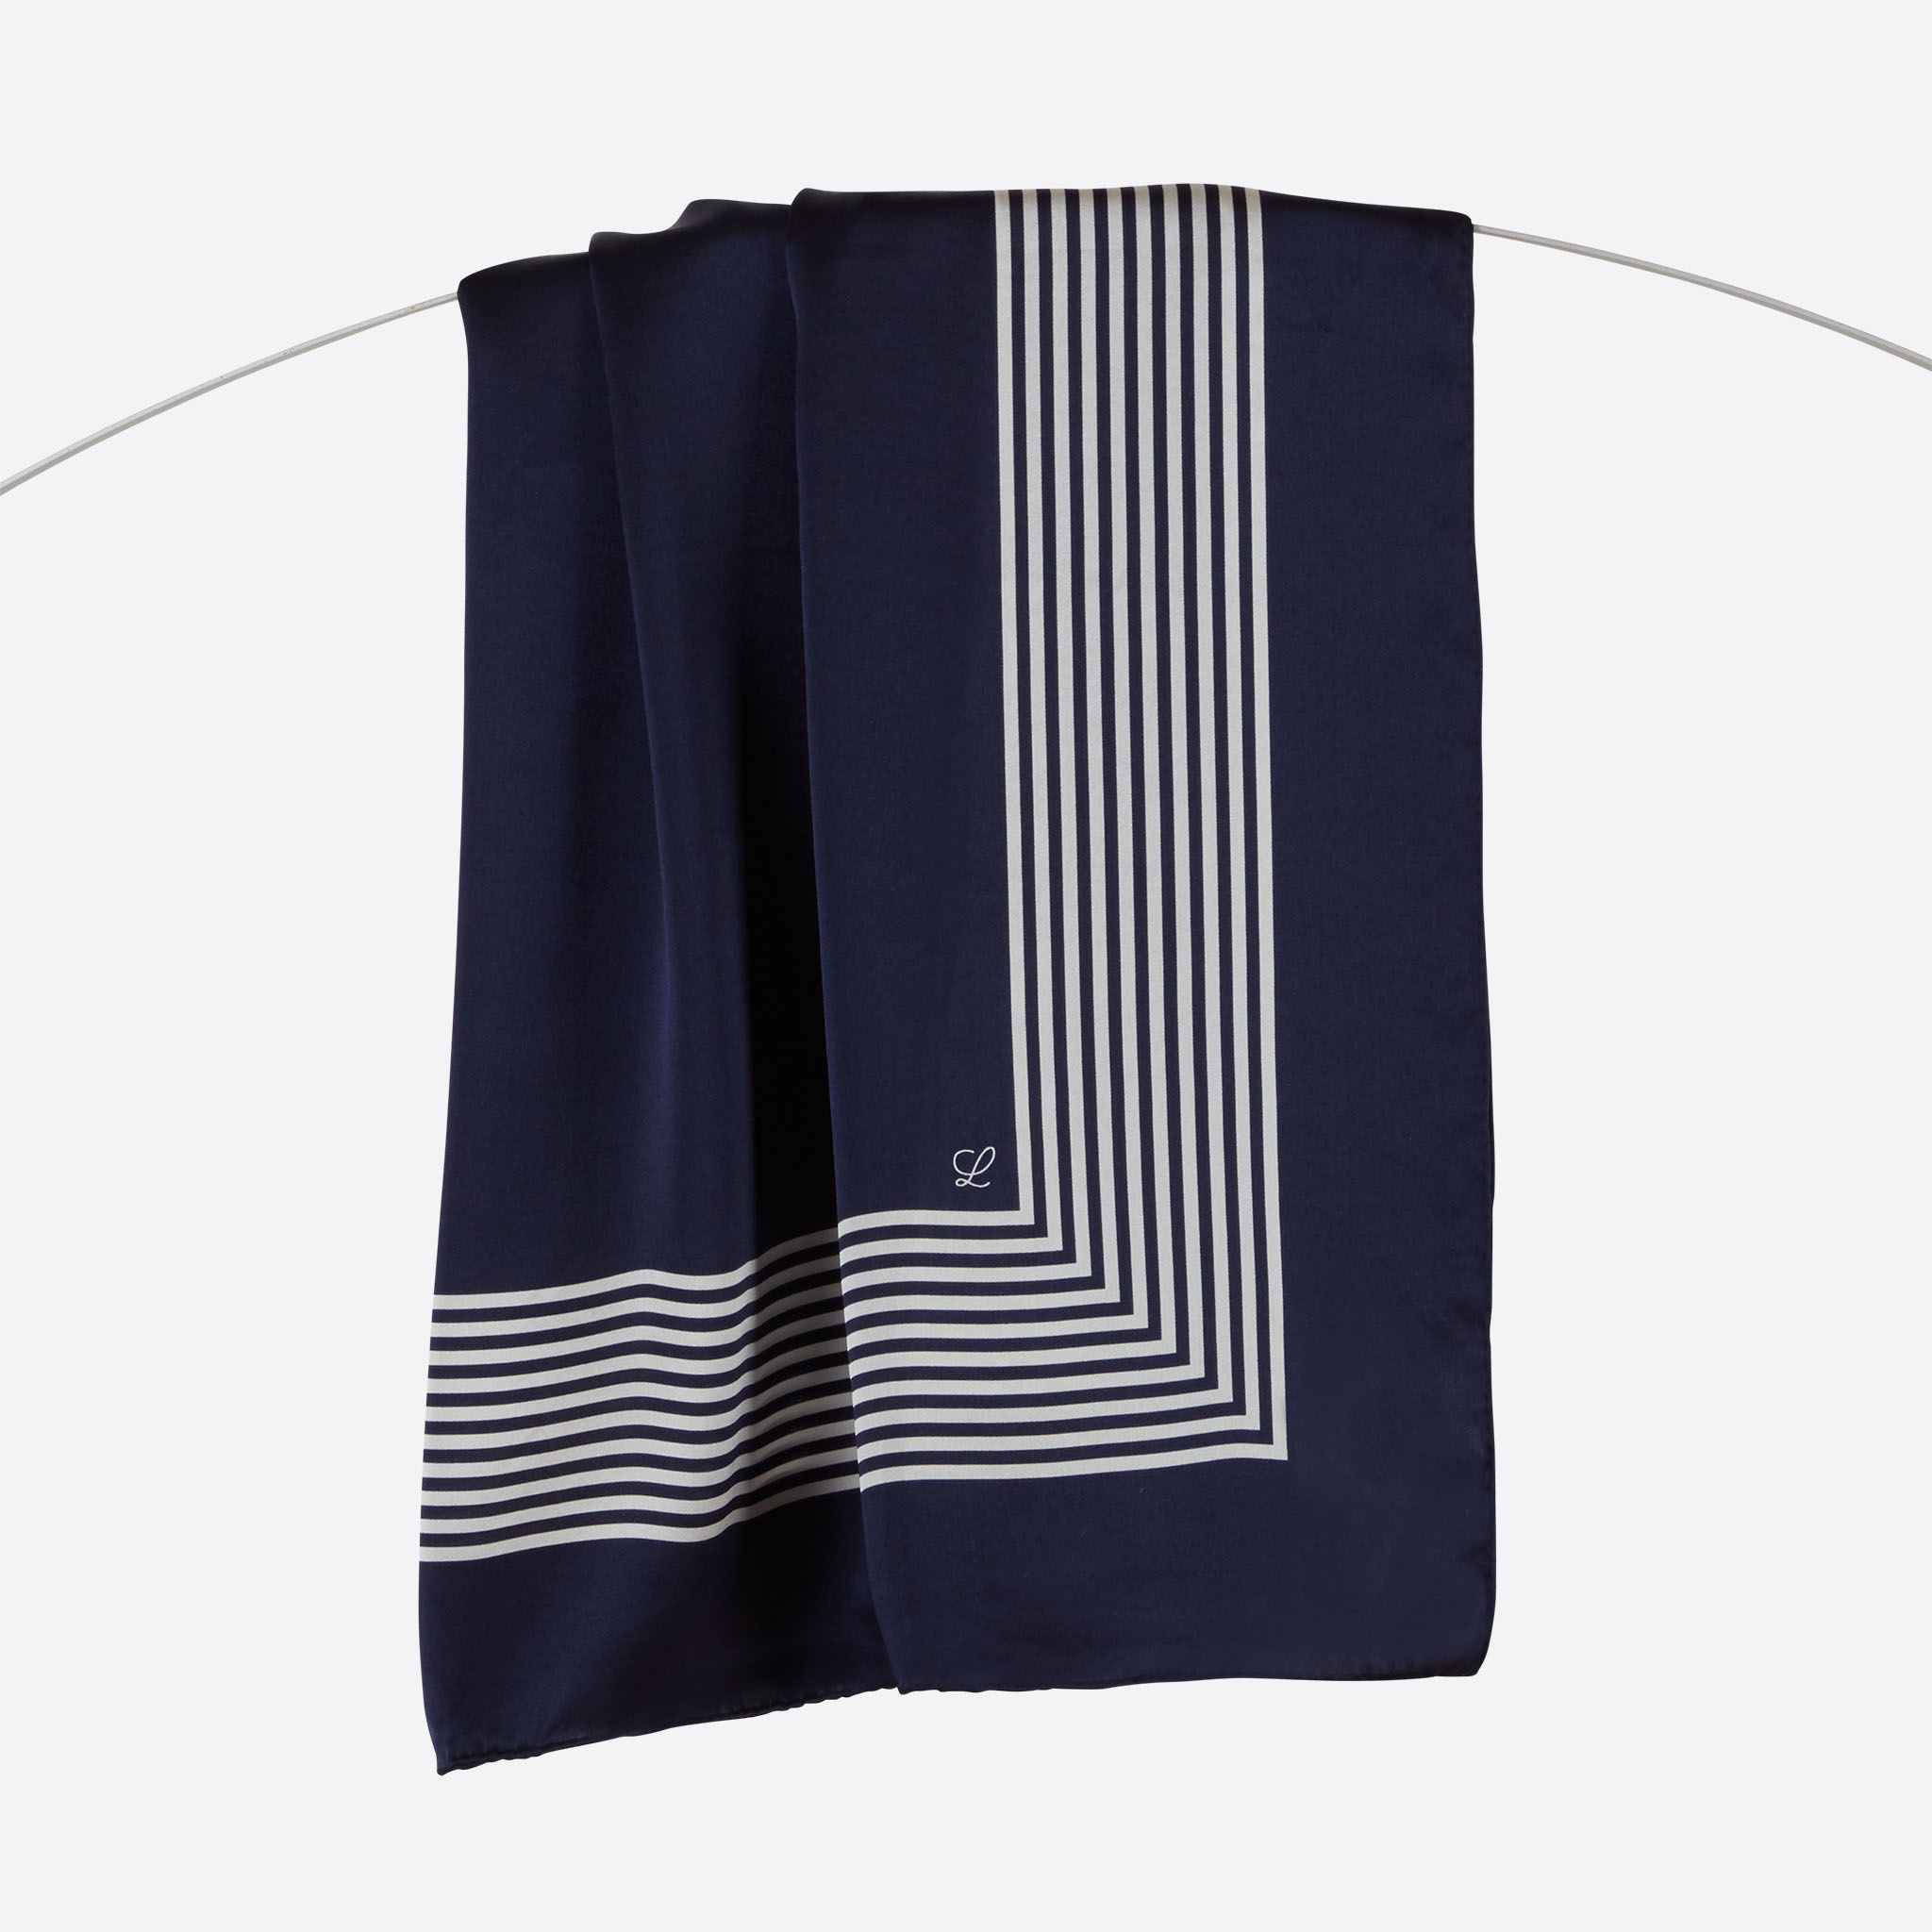 Lalouette navy striped square silk scarf hanging